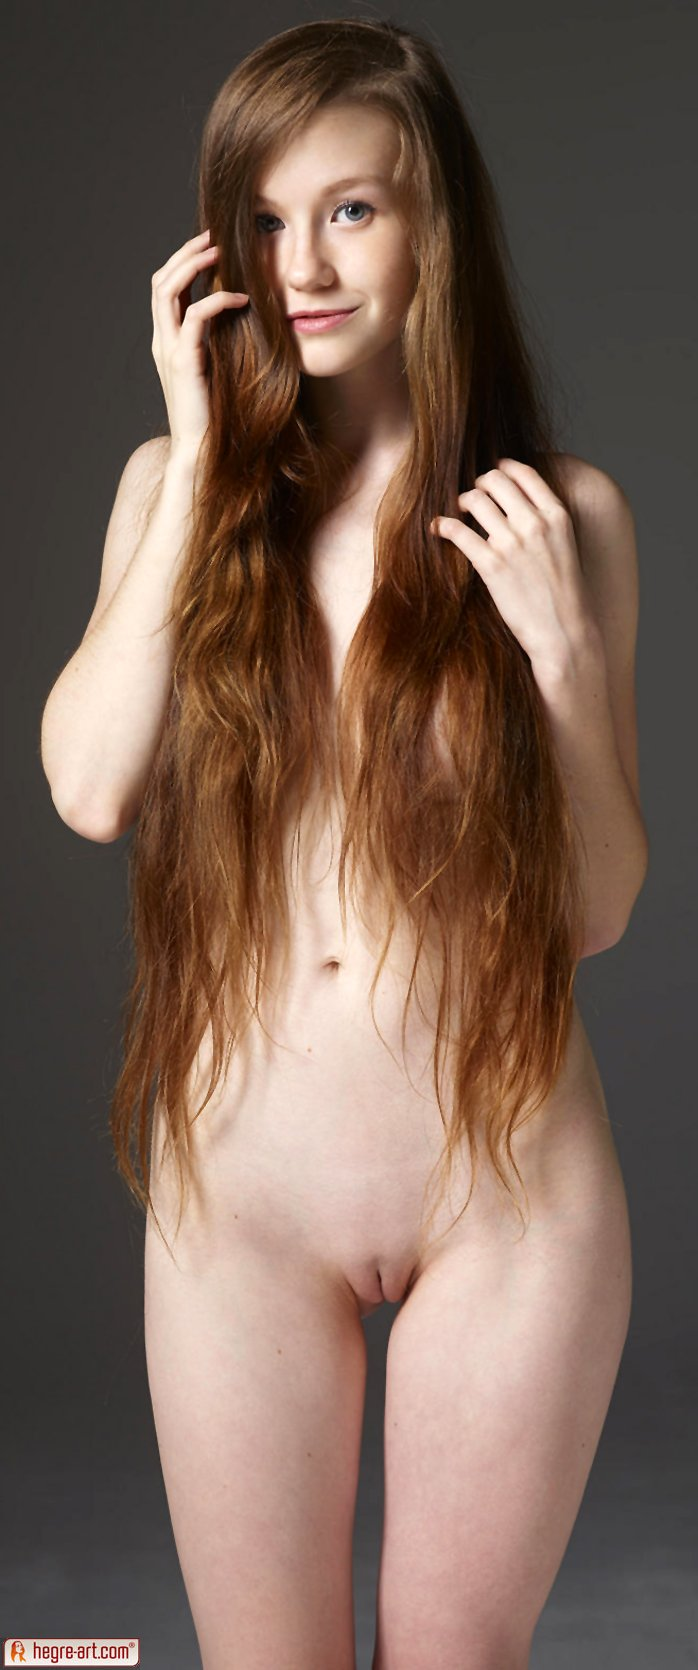 Long-haired girl Emily in Perfect Beauty by Hegre Art